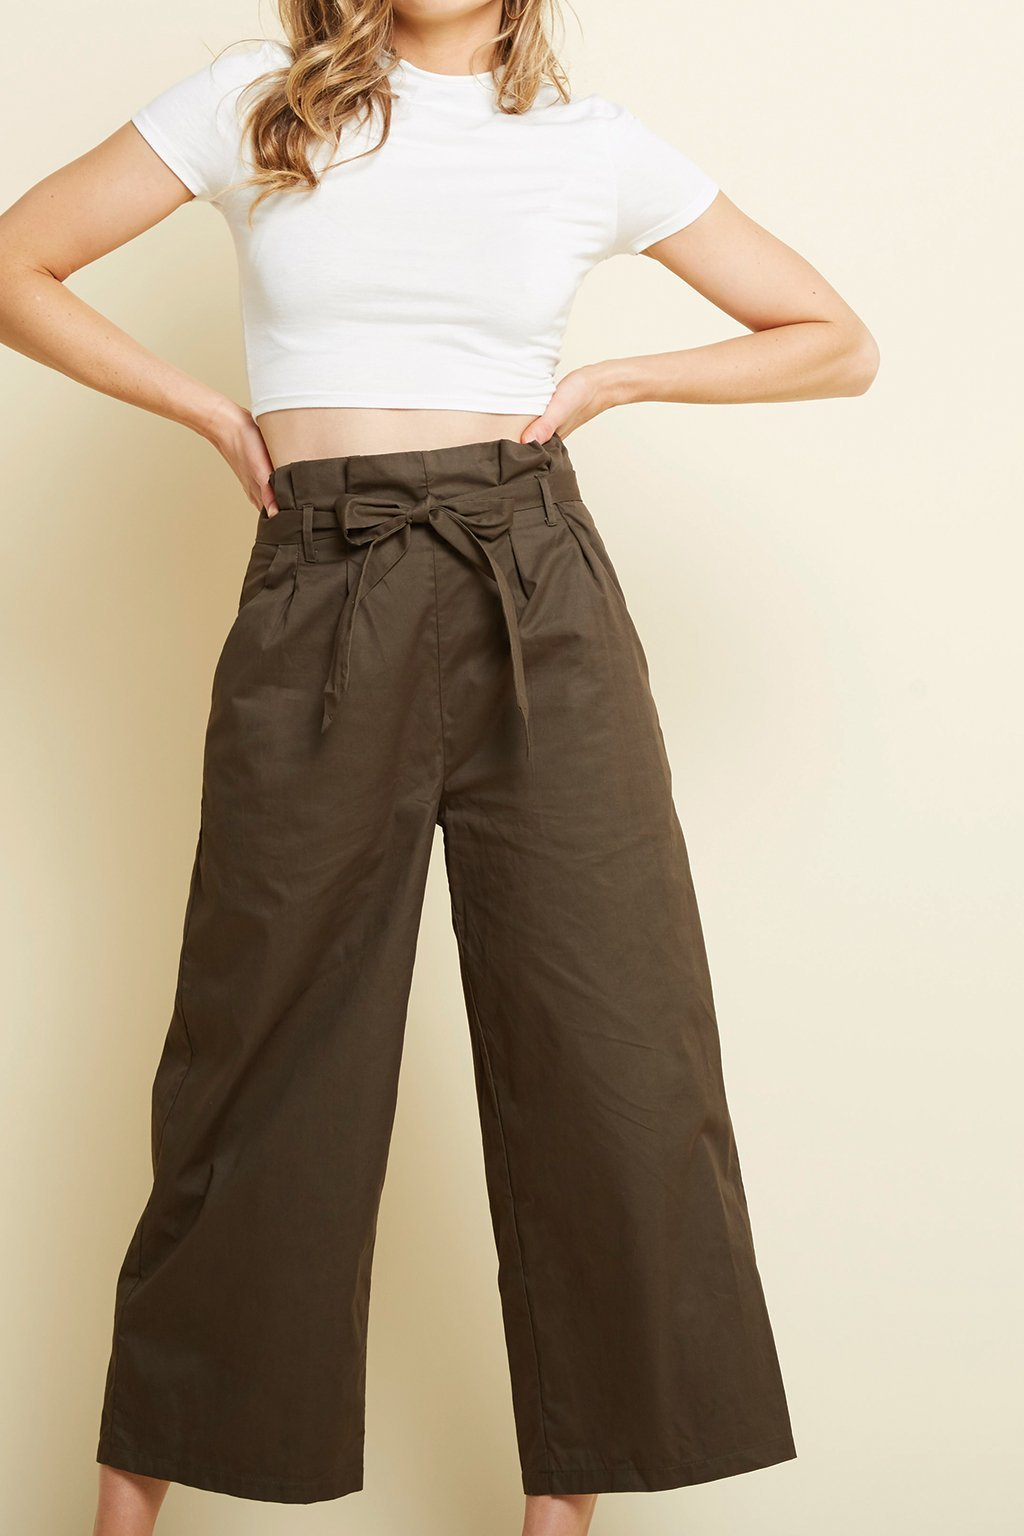 Poshsquare Pants XS / Olive Amy Trousers